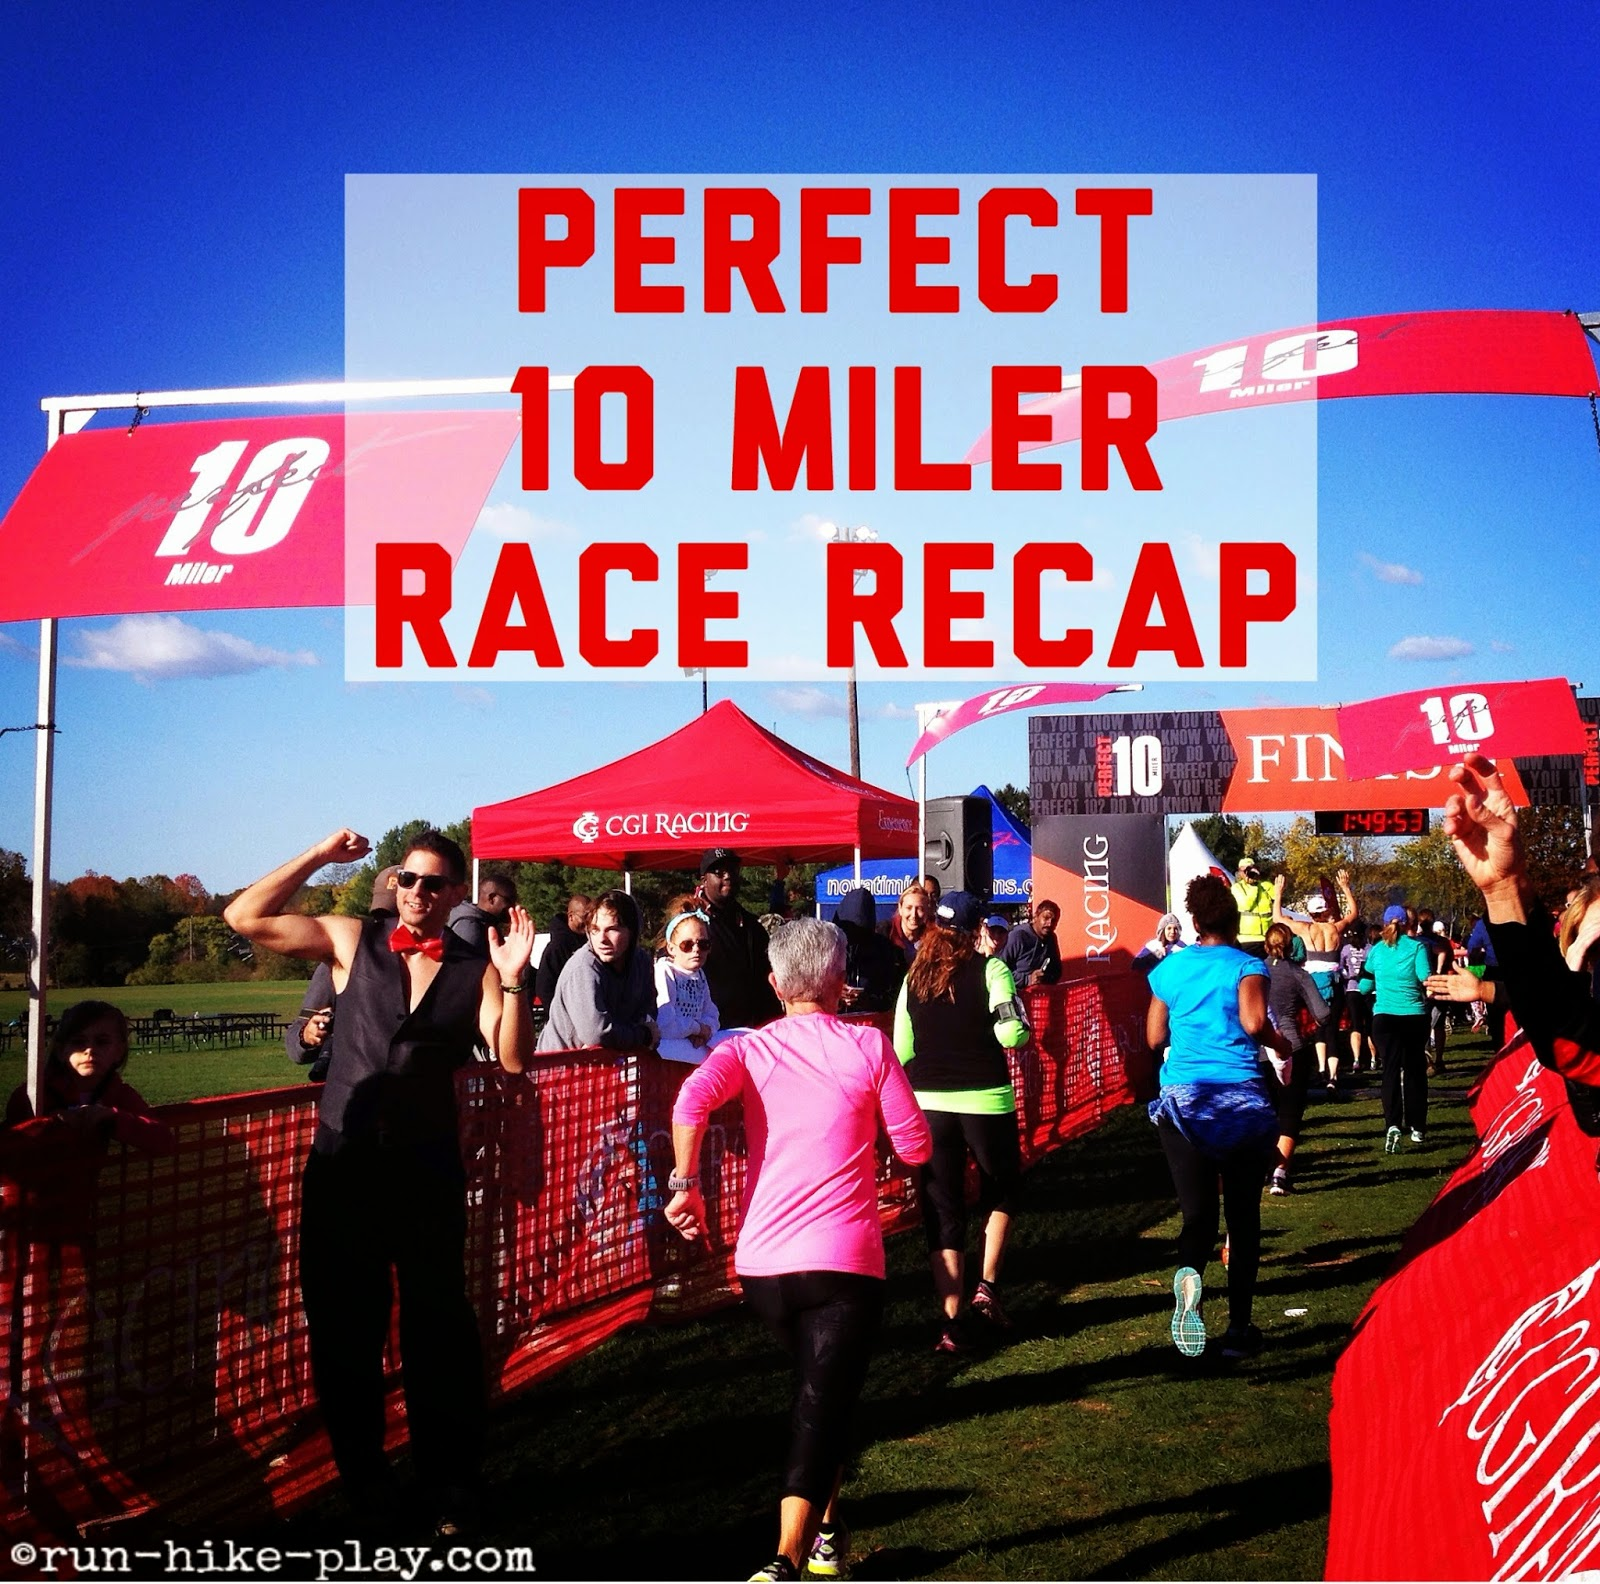 Perfect 10 Miler Race Recap